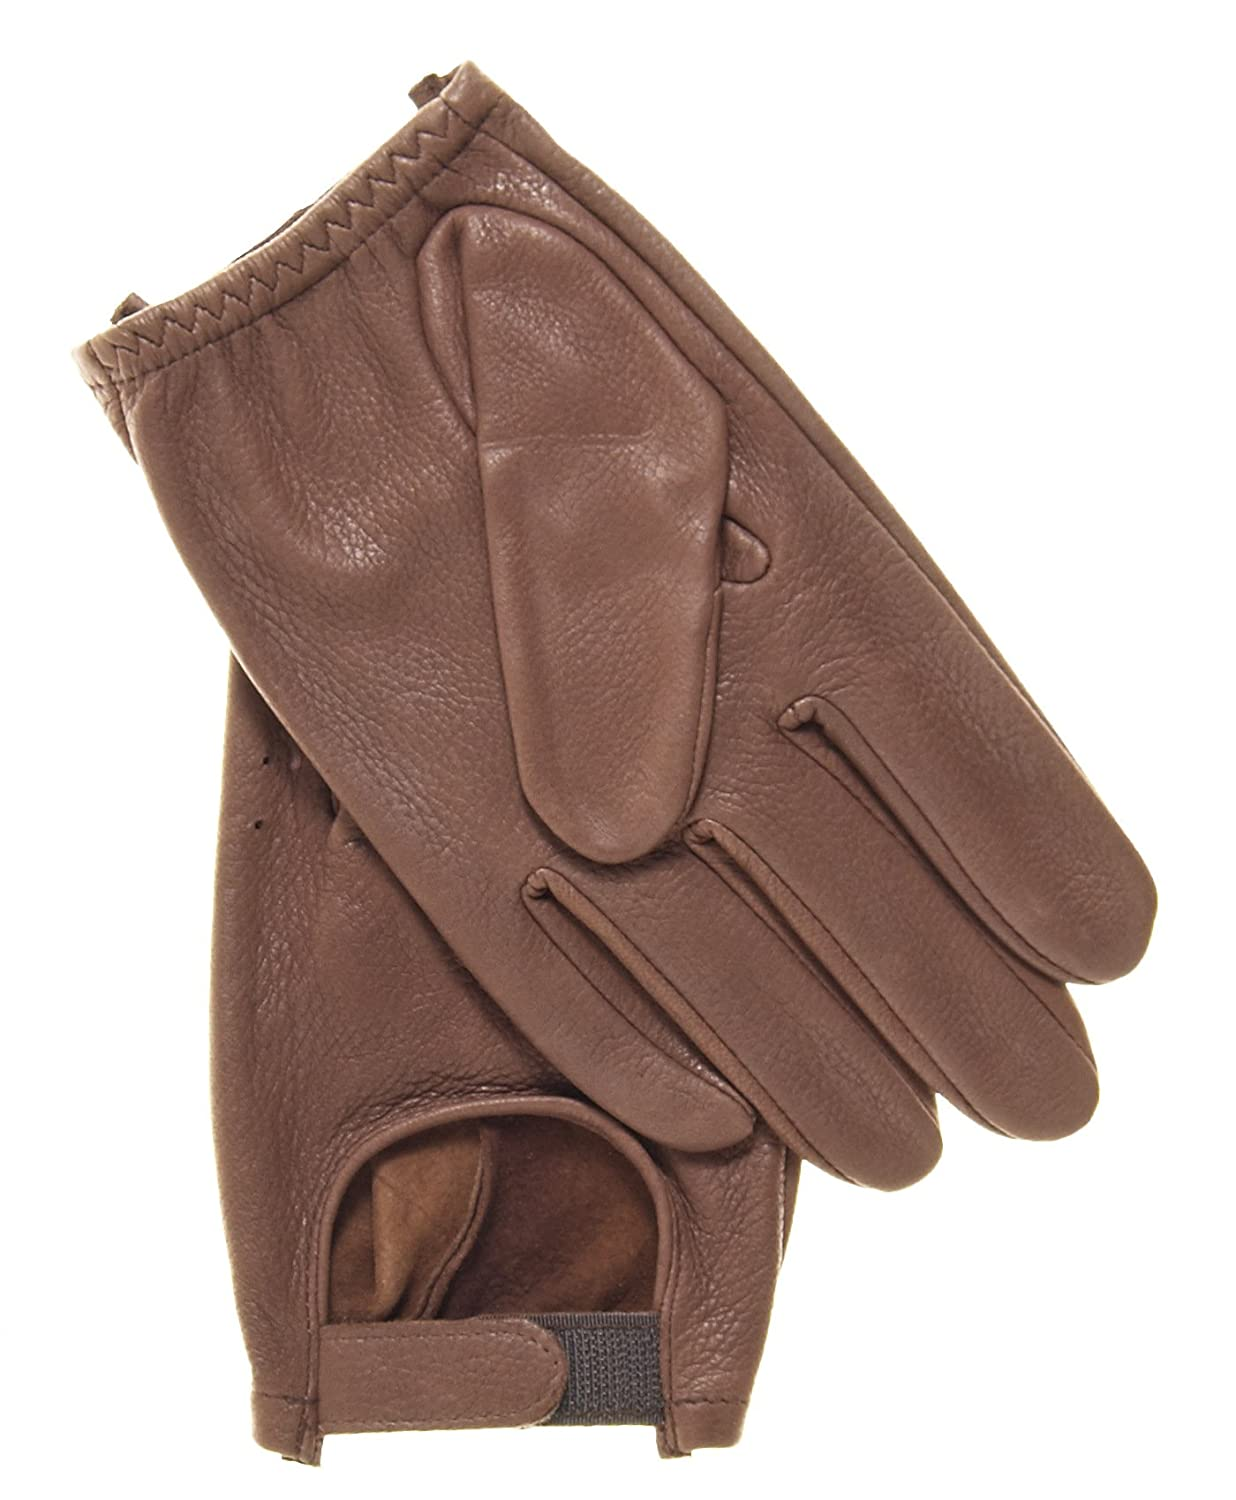 Deerskin leather driving gloves - Pratt And Hart Men S Deerskin Leather Driving Gloves Size S Color Black At Amazon Men S Clothing Store Cold Weather Gloves